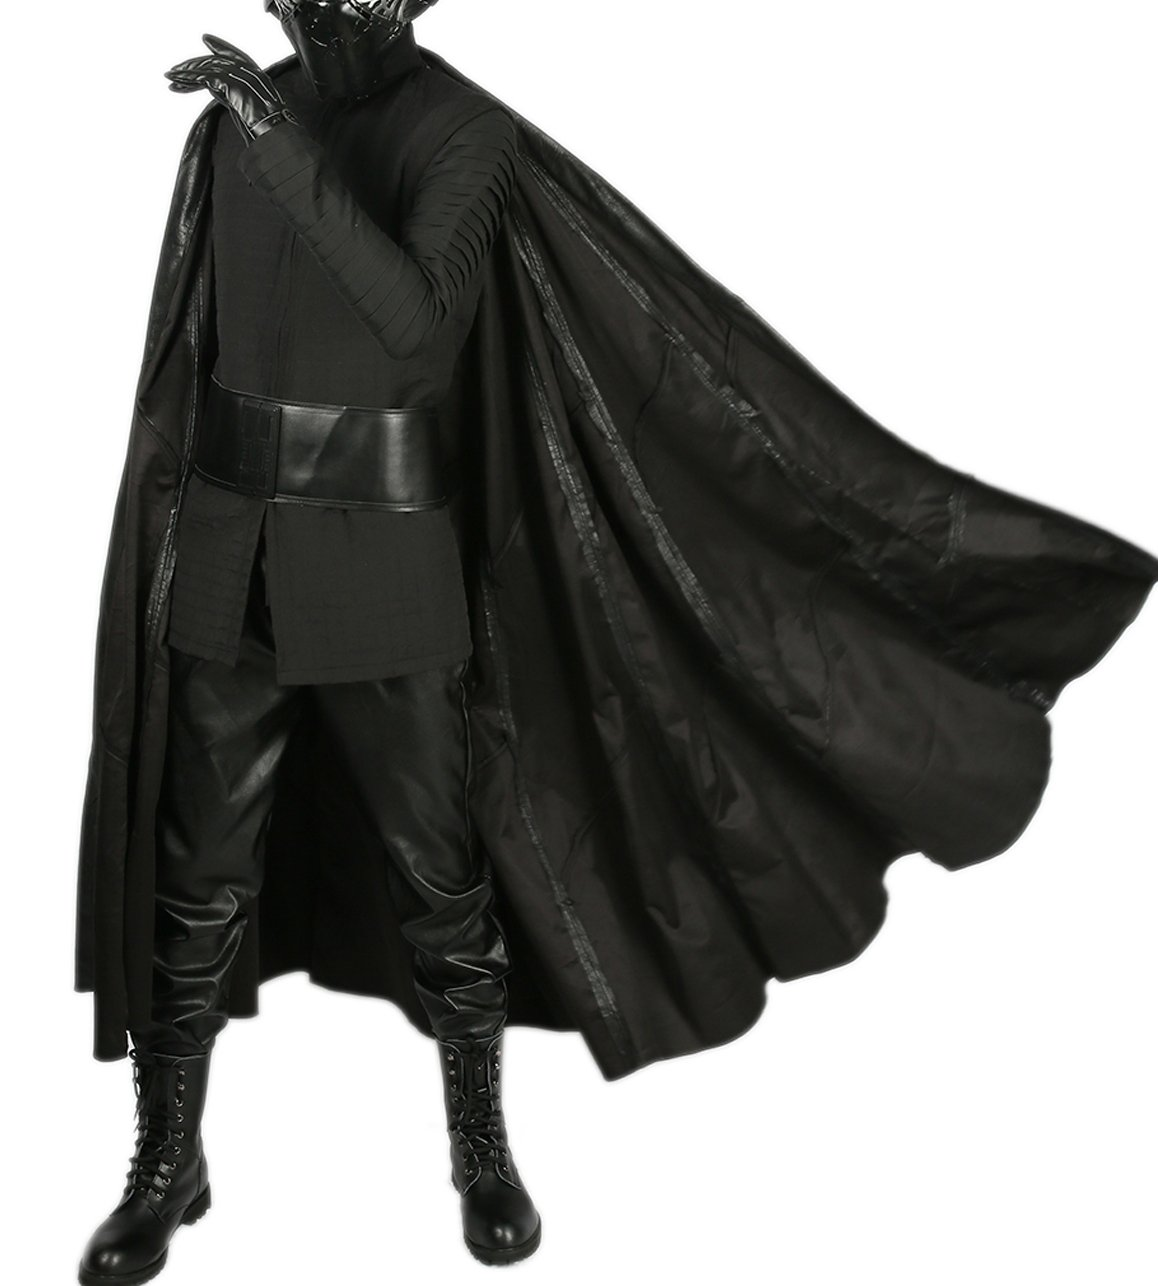 xcoser Kylo Ren Costume Last Jedi SW 8 Cosplay Outfit Adult Full Suit Custom Made XL by xcoser (Image #2)